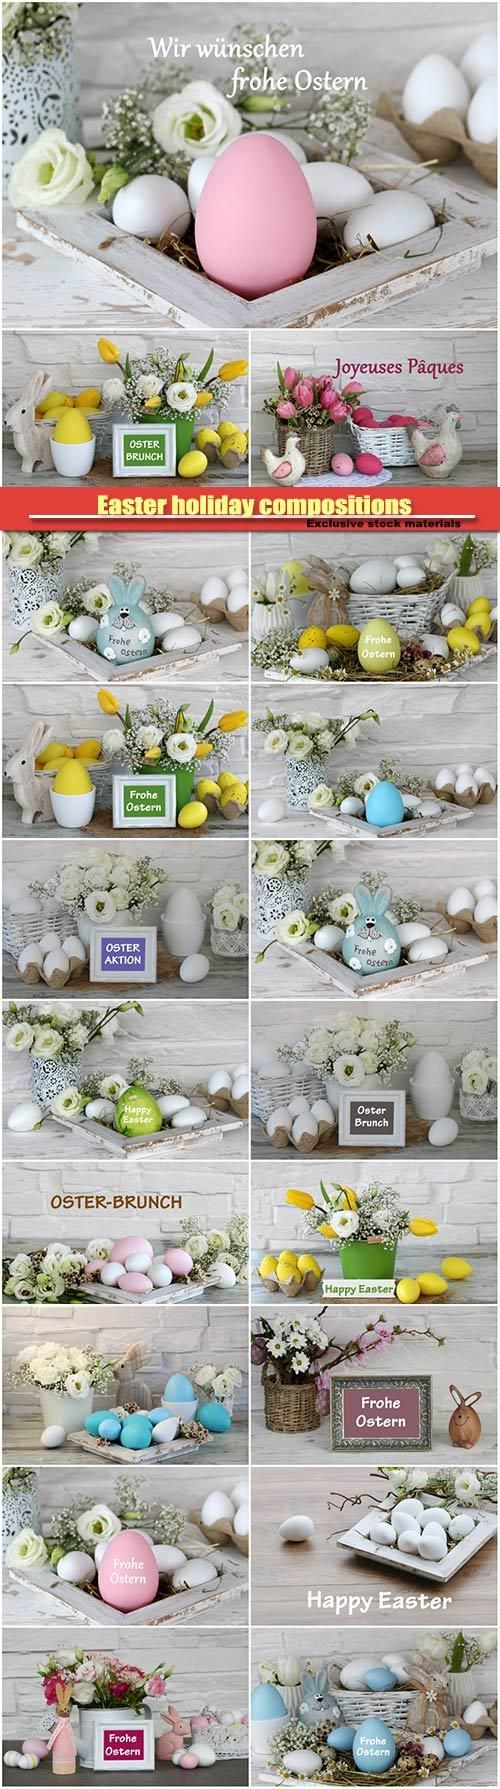 Easter holiday compositions